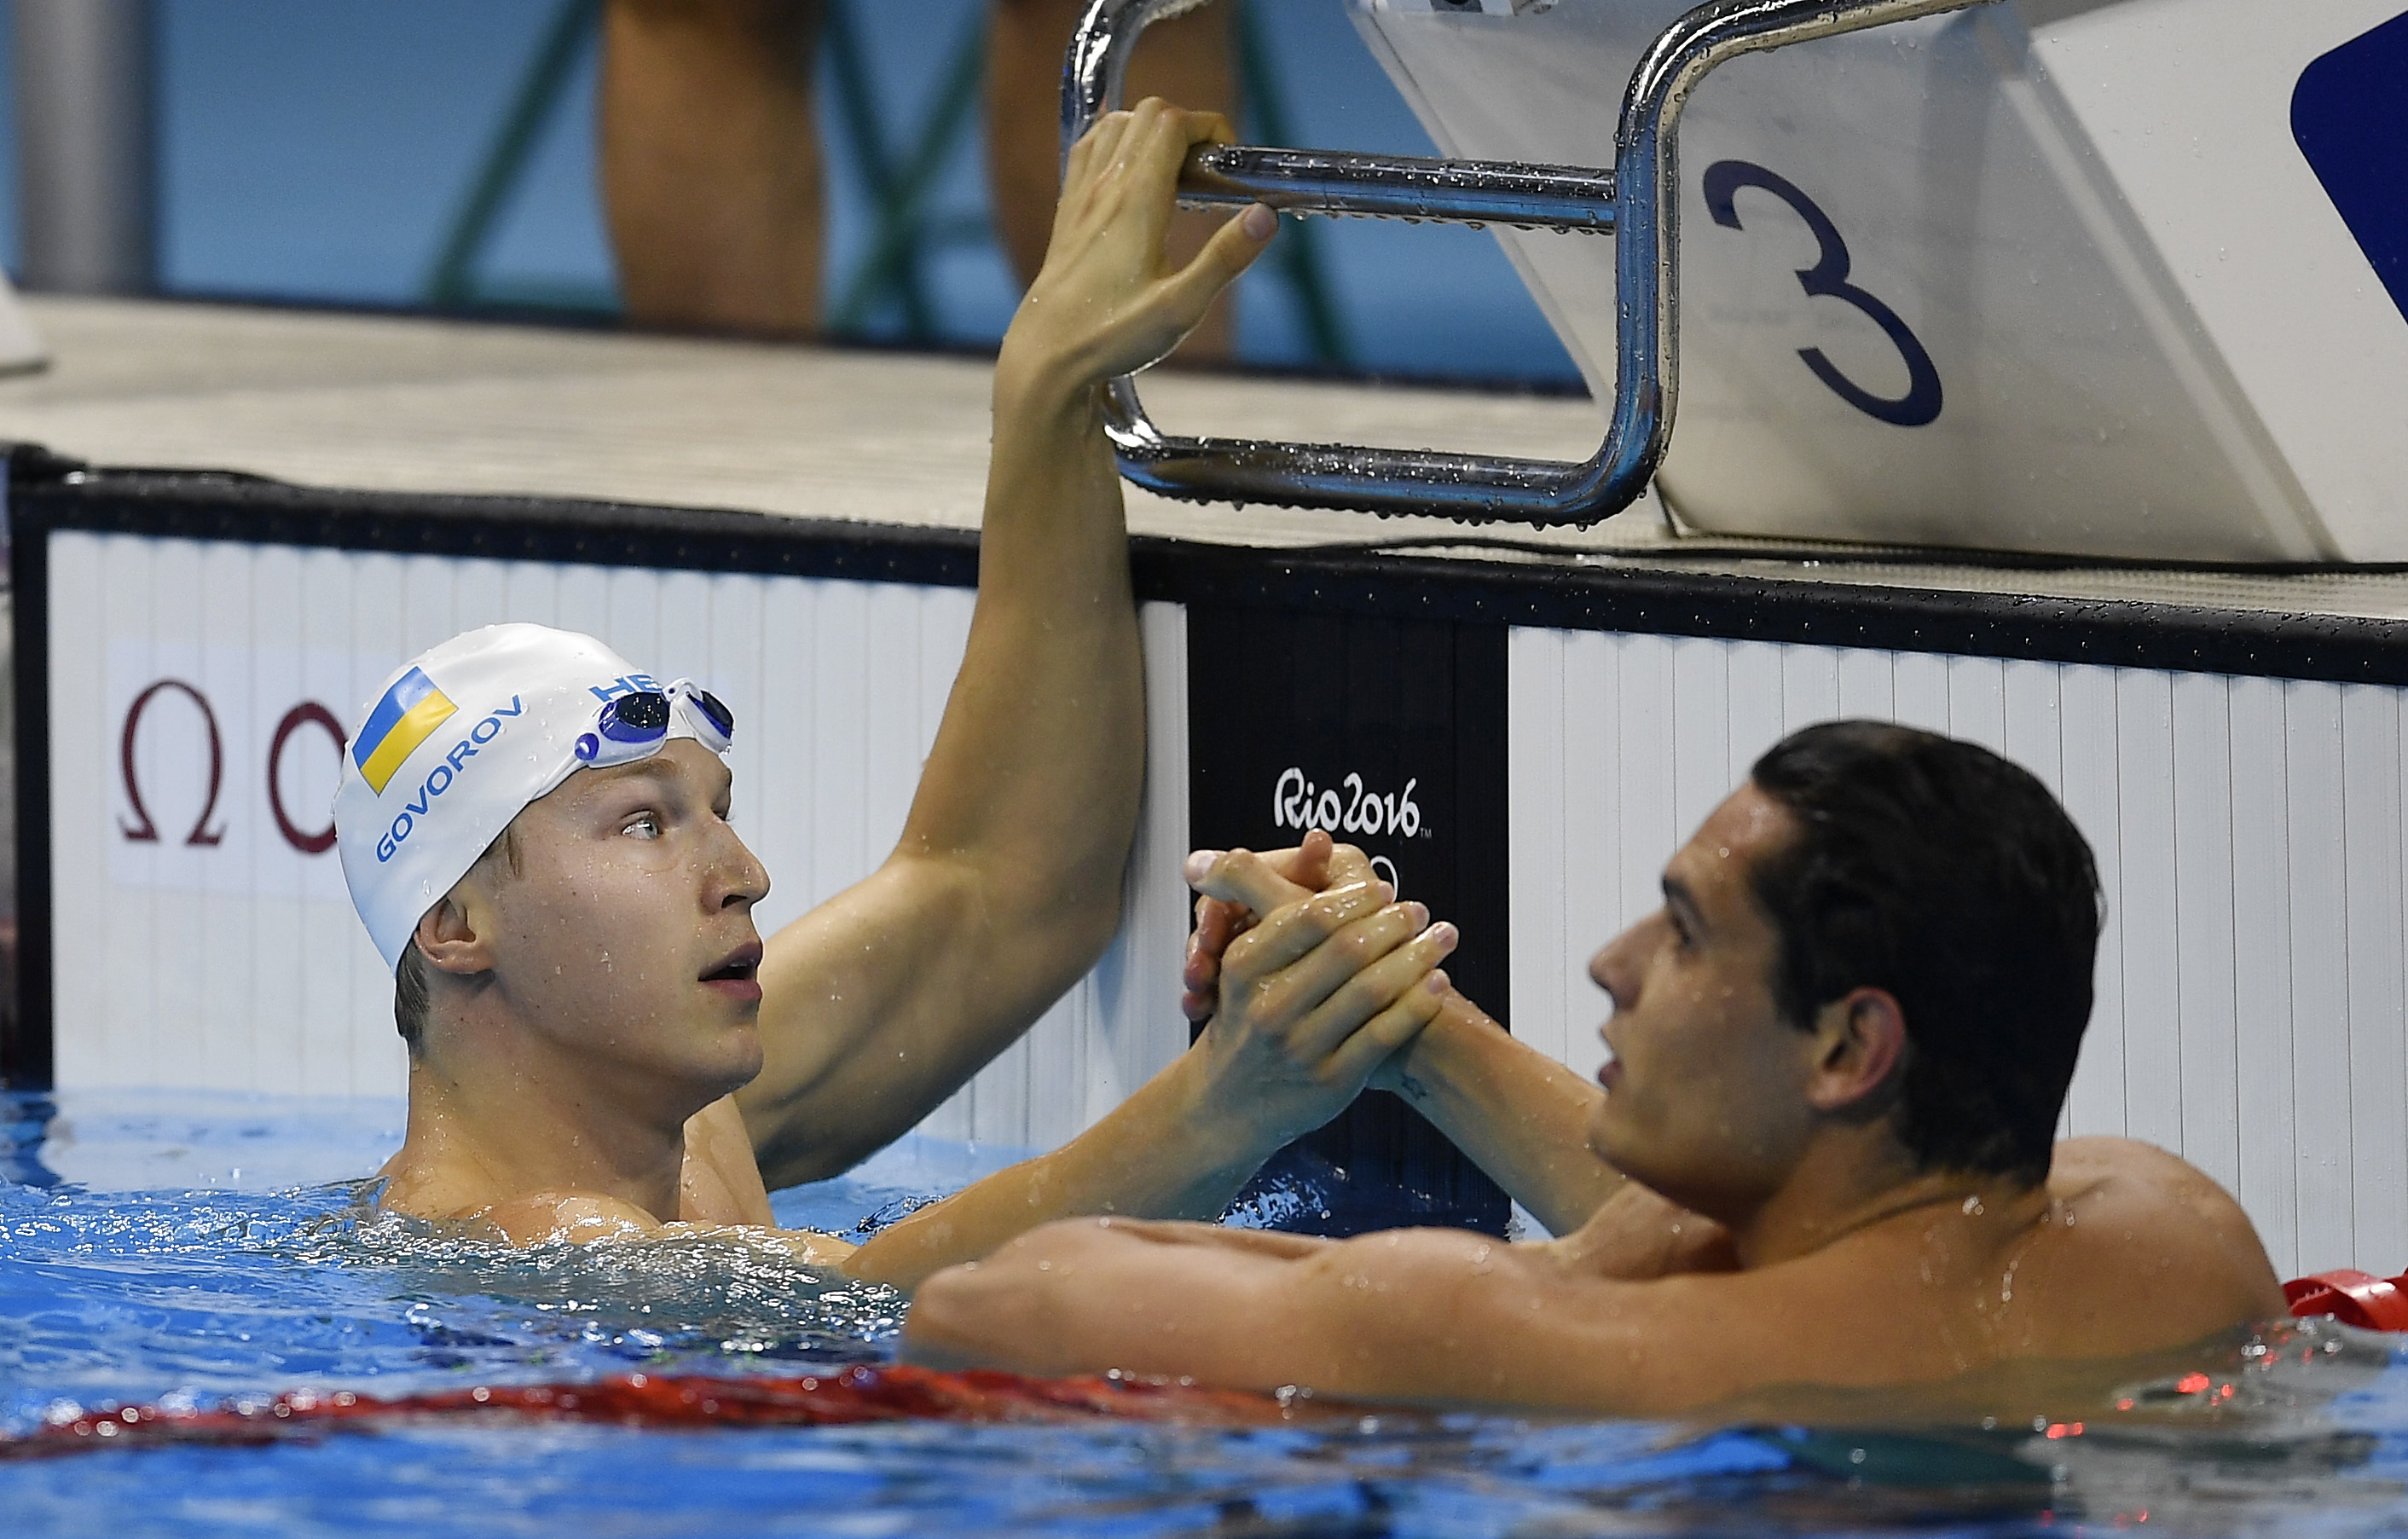 Ukraine's Andrii Govorov, left, and France's Florent Manaudou celebrate after a men's 50-meter freestyle heat during the swimming competitions at the 2016 Summer Olympics, Thursday, Aug. 11, 2016, in Rio de Janeiro, Brazil. (AP Photo/Martin Meissner)